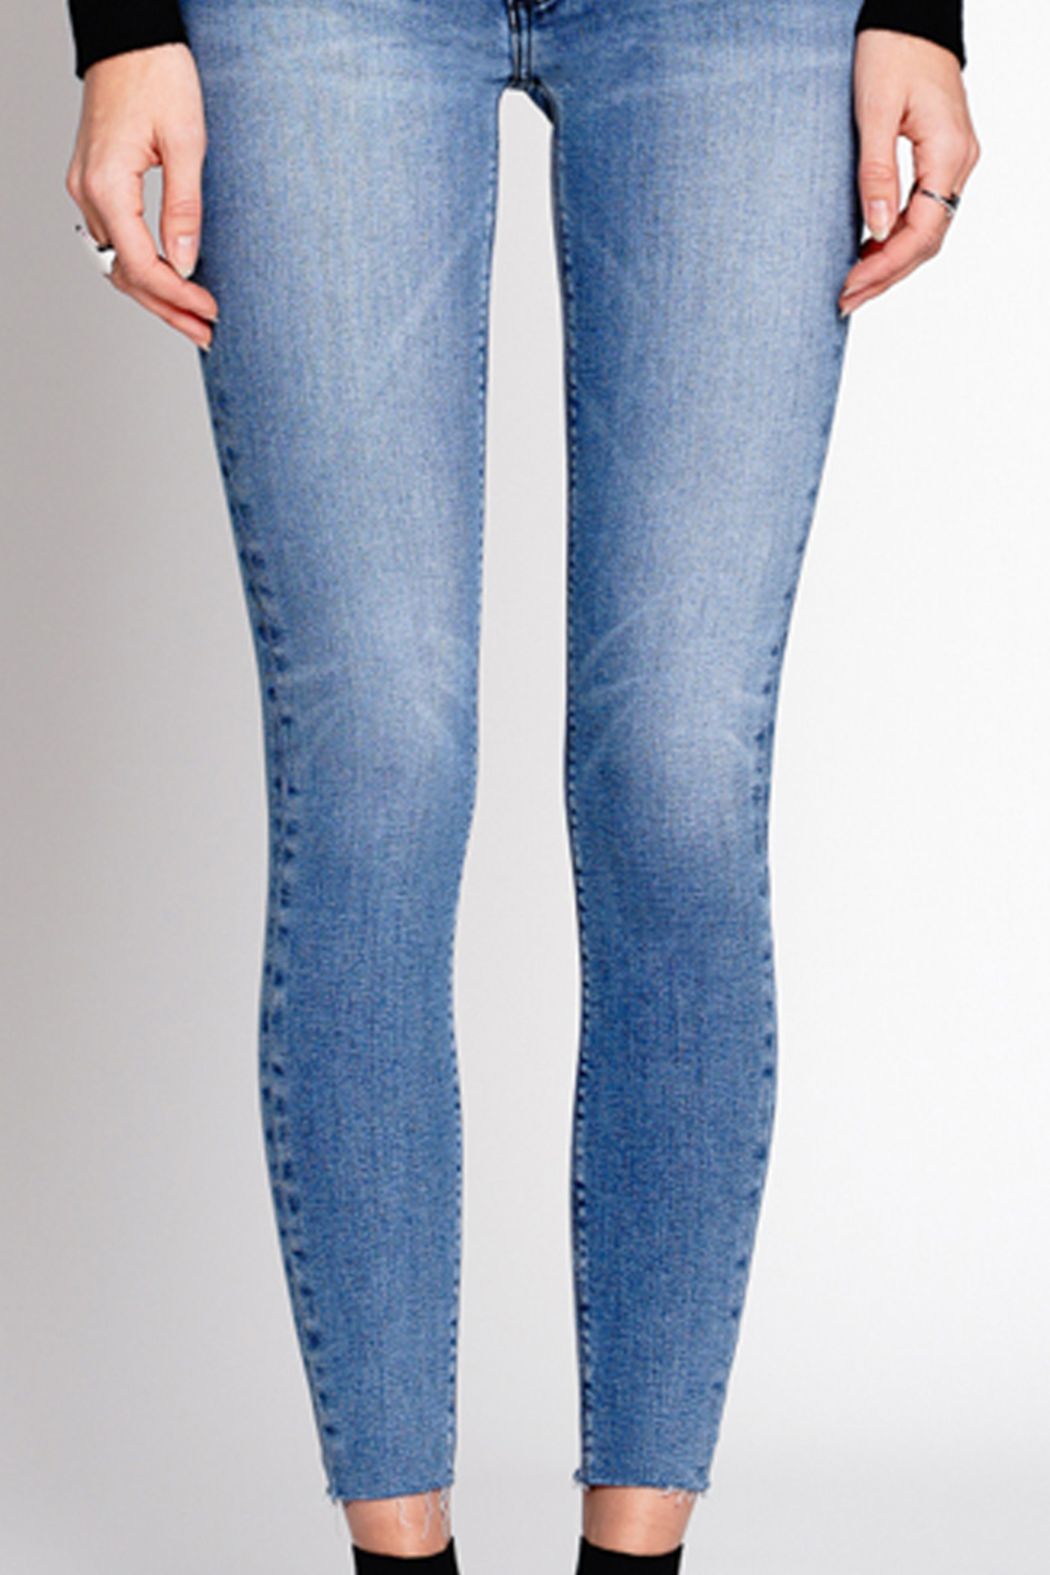 Black Orchid Denim NOAH ANKLE FRAY JEAN - Side Cropped Image